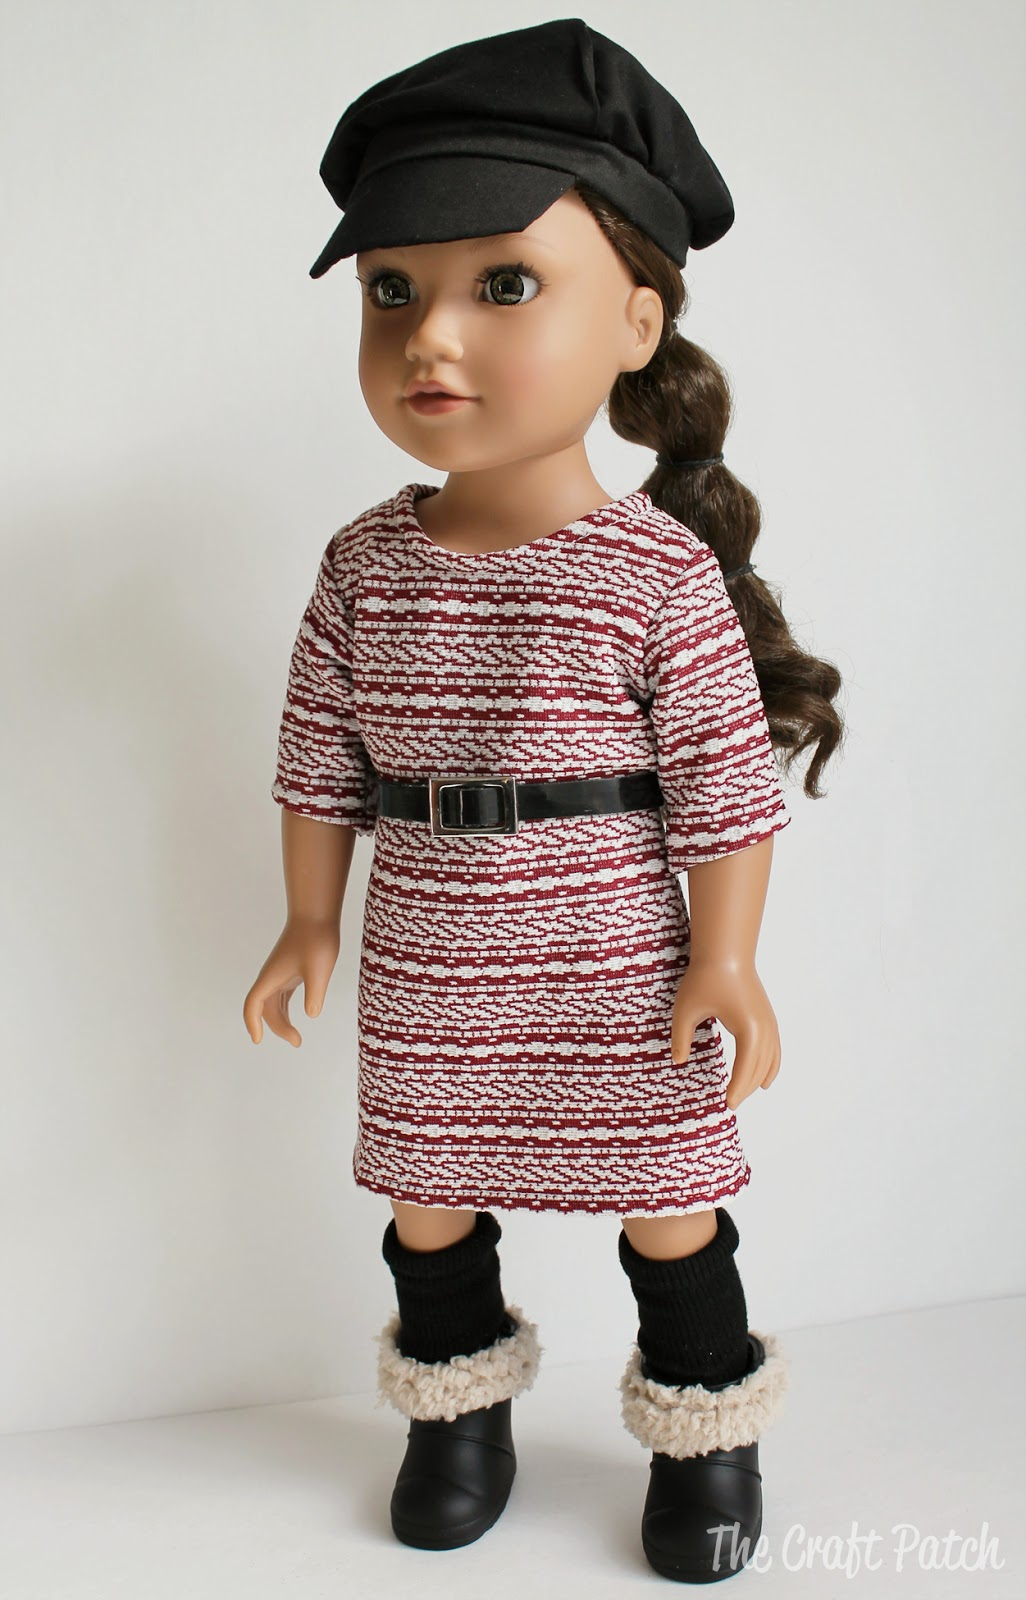 Simple Knit Dress Pattern : The Craft Patch: American Girl Doll Basic Knit Dress Pattern and Tutorial